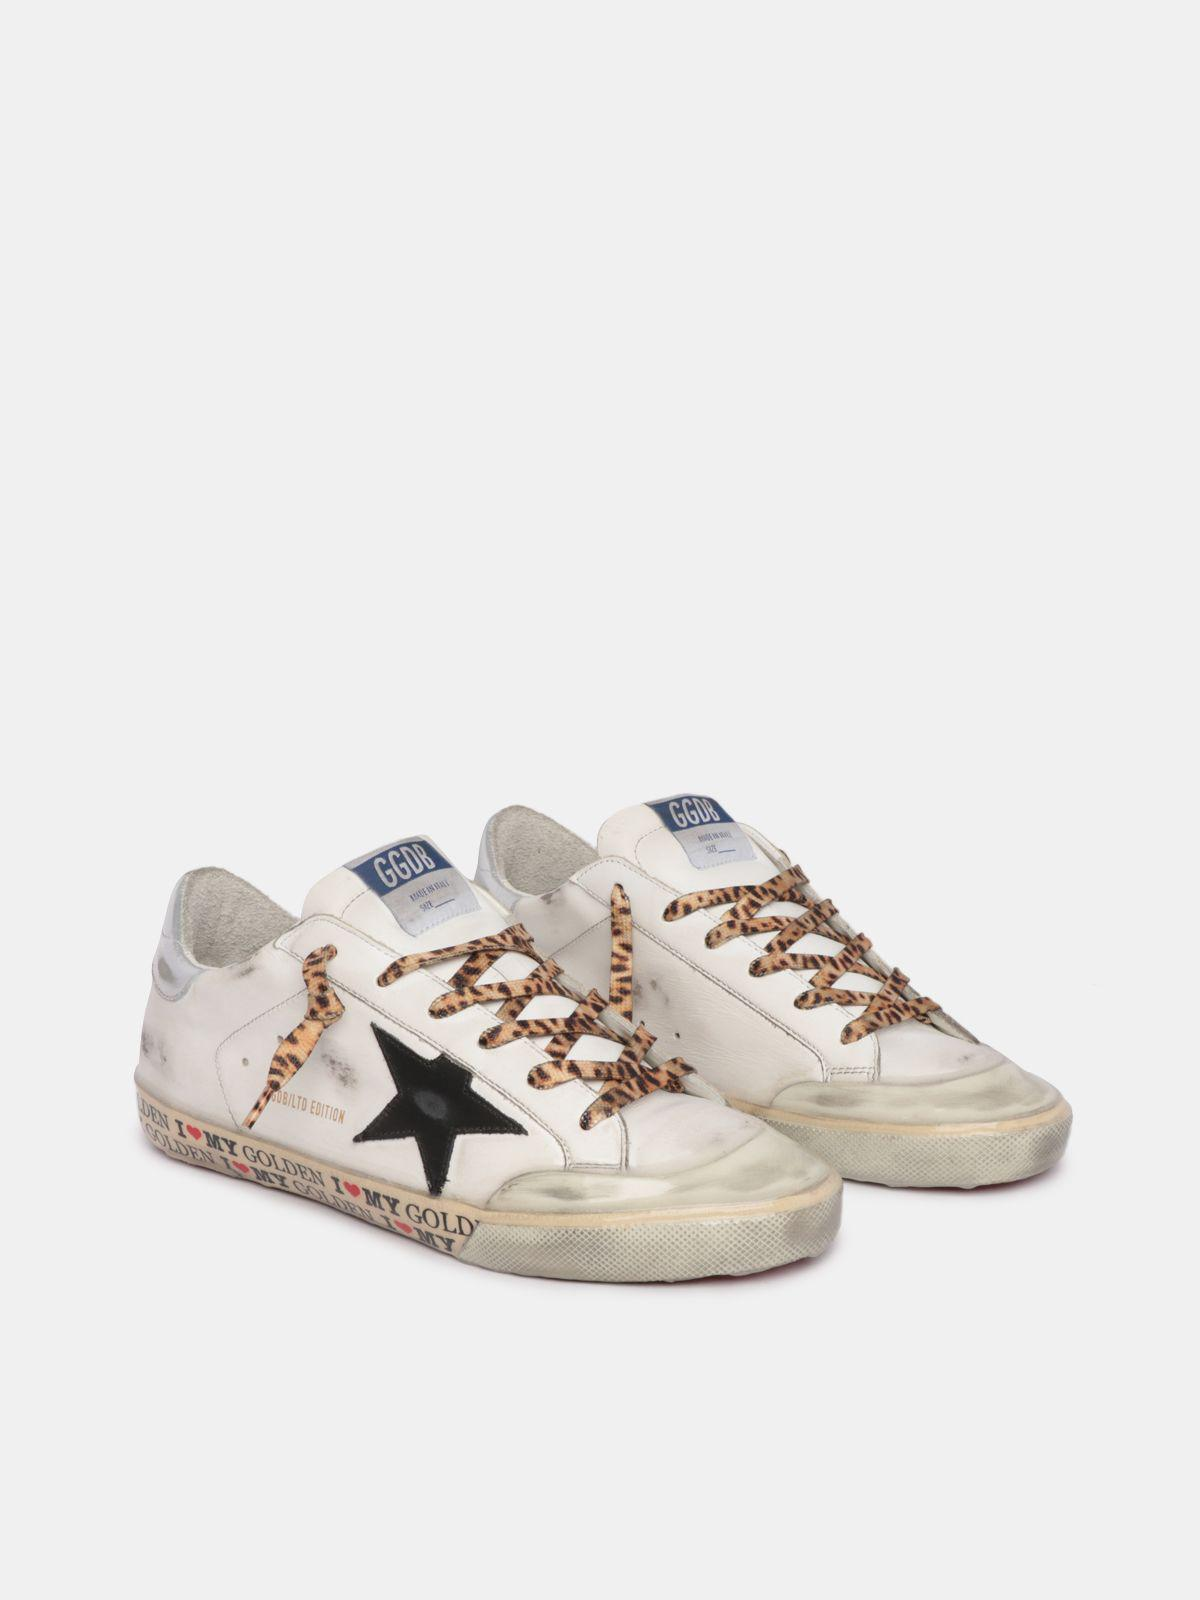 LTD Super-Star sneakers with decorations on the foxing and leopard-print laces 2